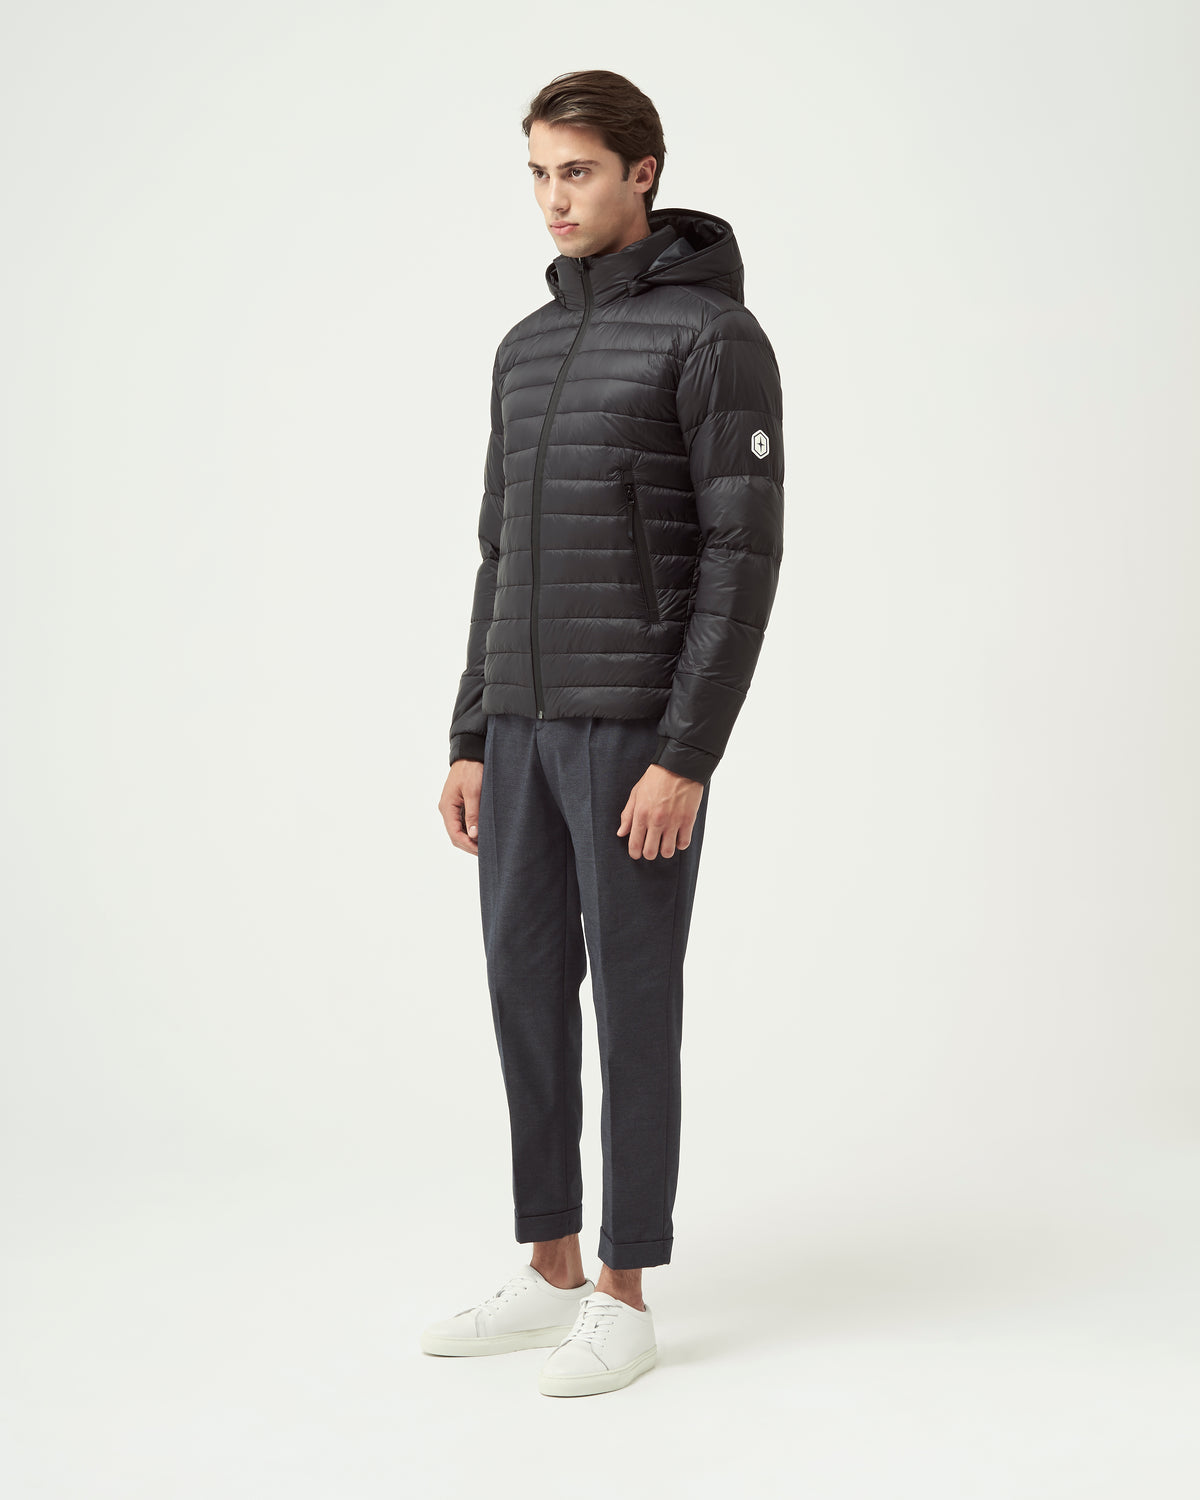 Quartz Co. - Canadian Made Winter Jackets | Lans | Men Down Lightweight Jacket | Side